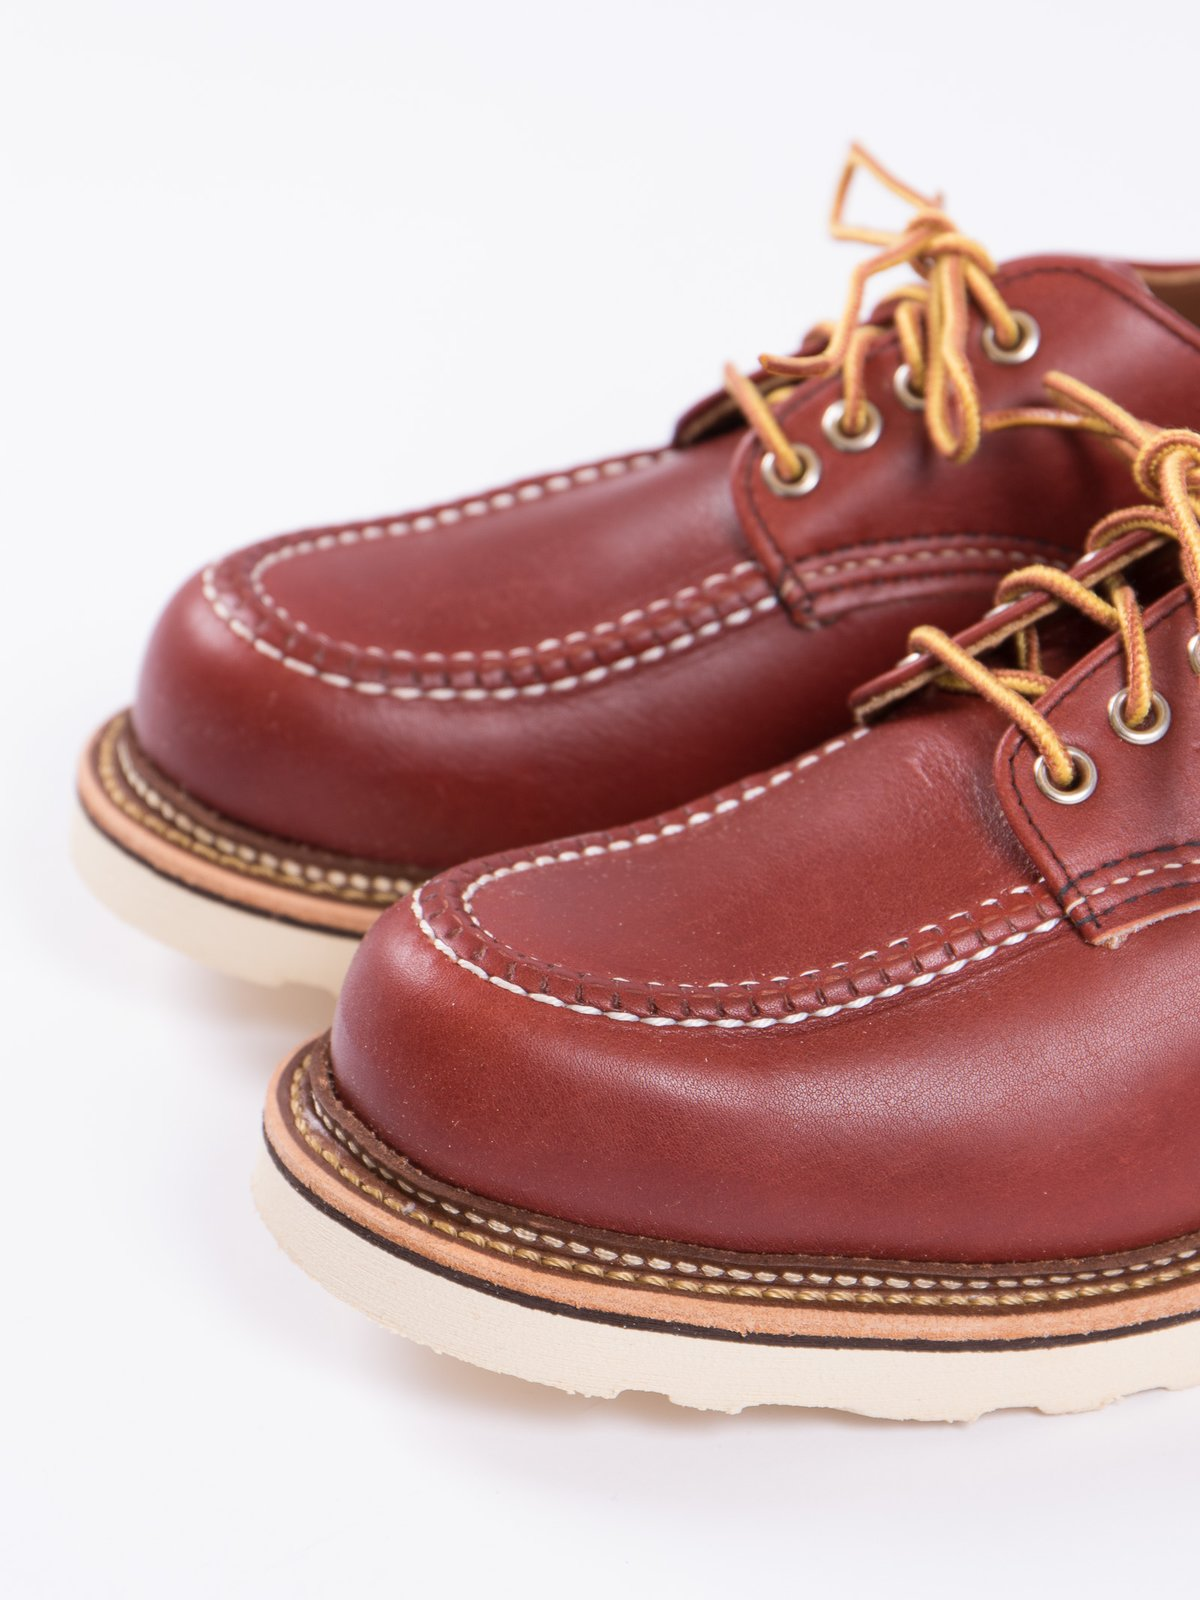 Oro Russet Portage 8103 Classic Oxford Shoe - Image 2